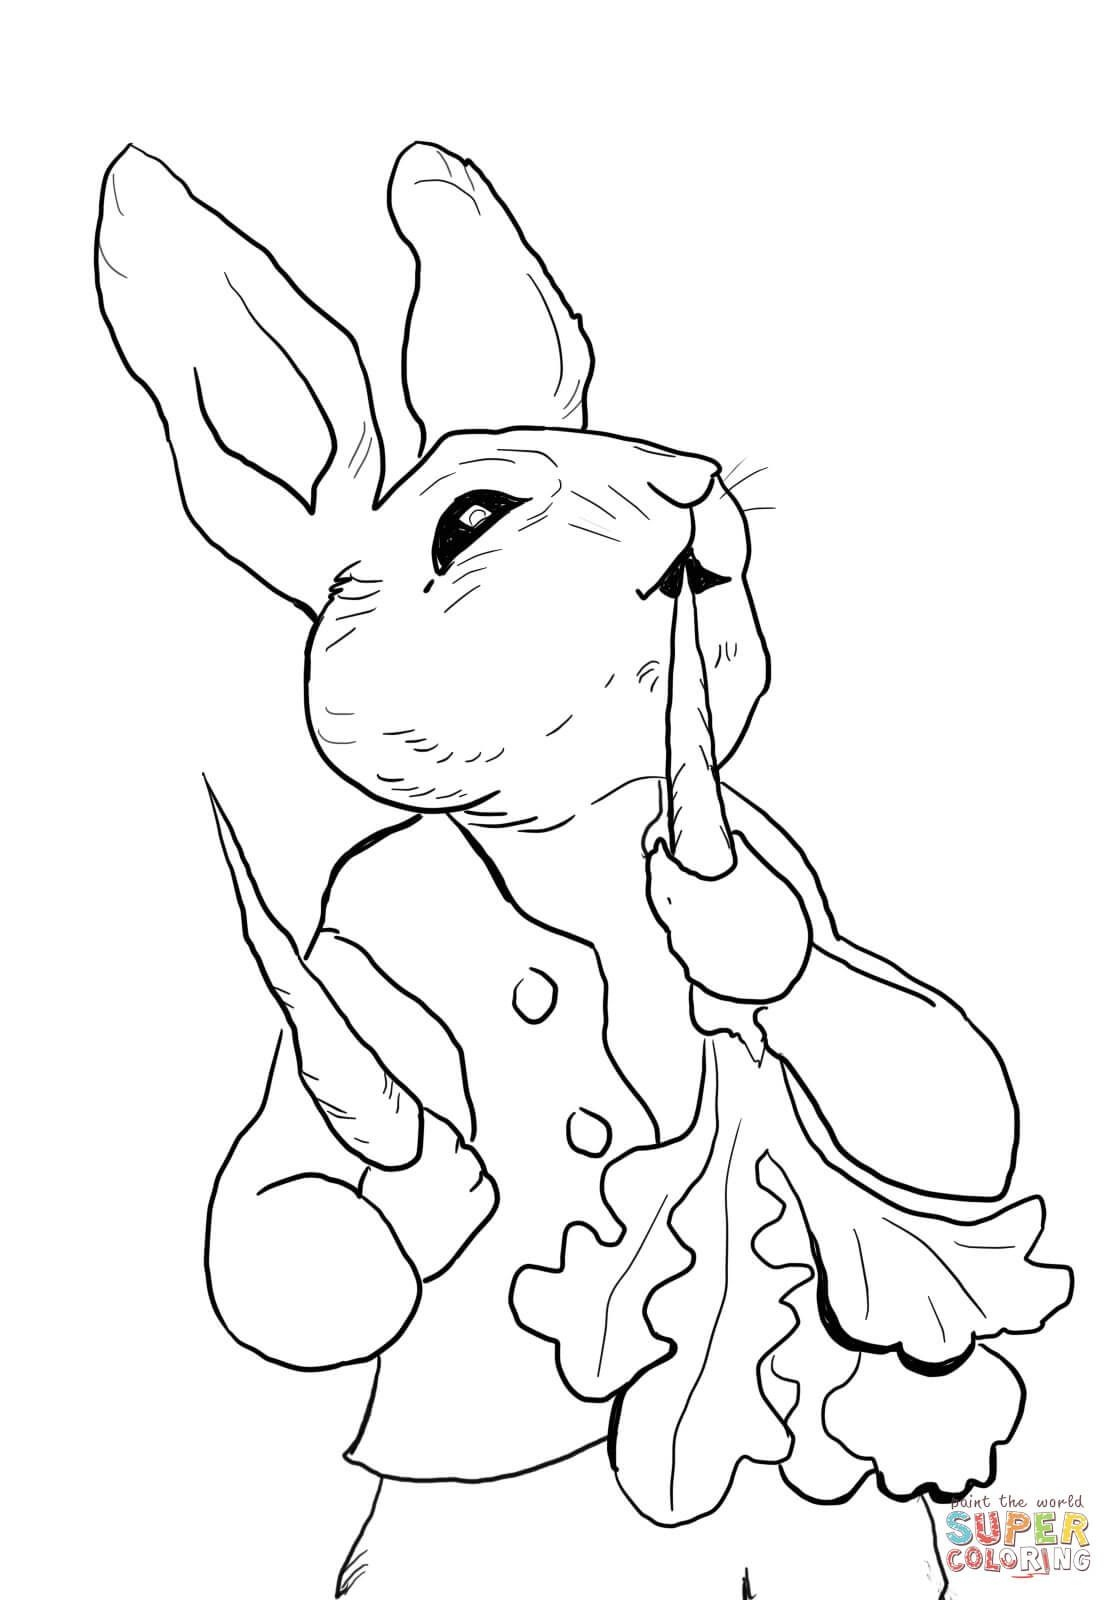 Peter Rabbit Eating Radishes Coloring Page From Peter Rabbit - Free Printable Peter Rabbit Coloring Pages